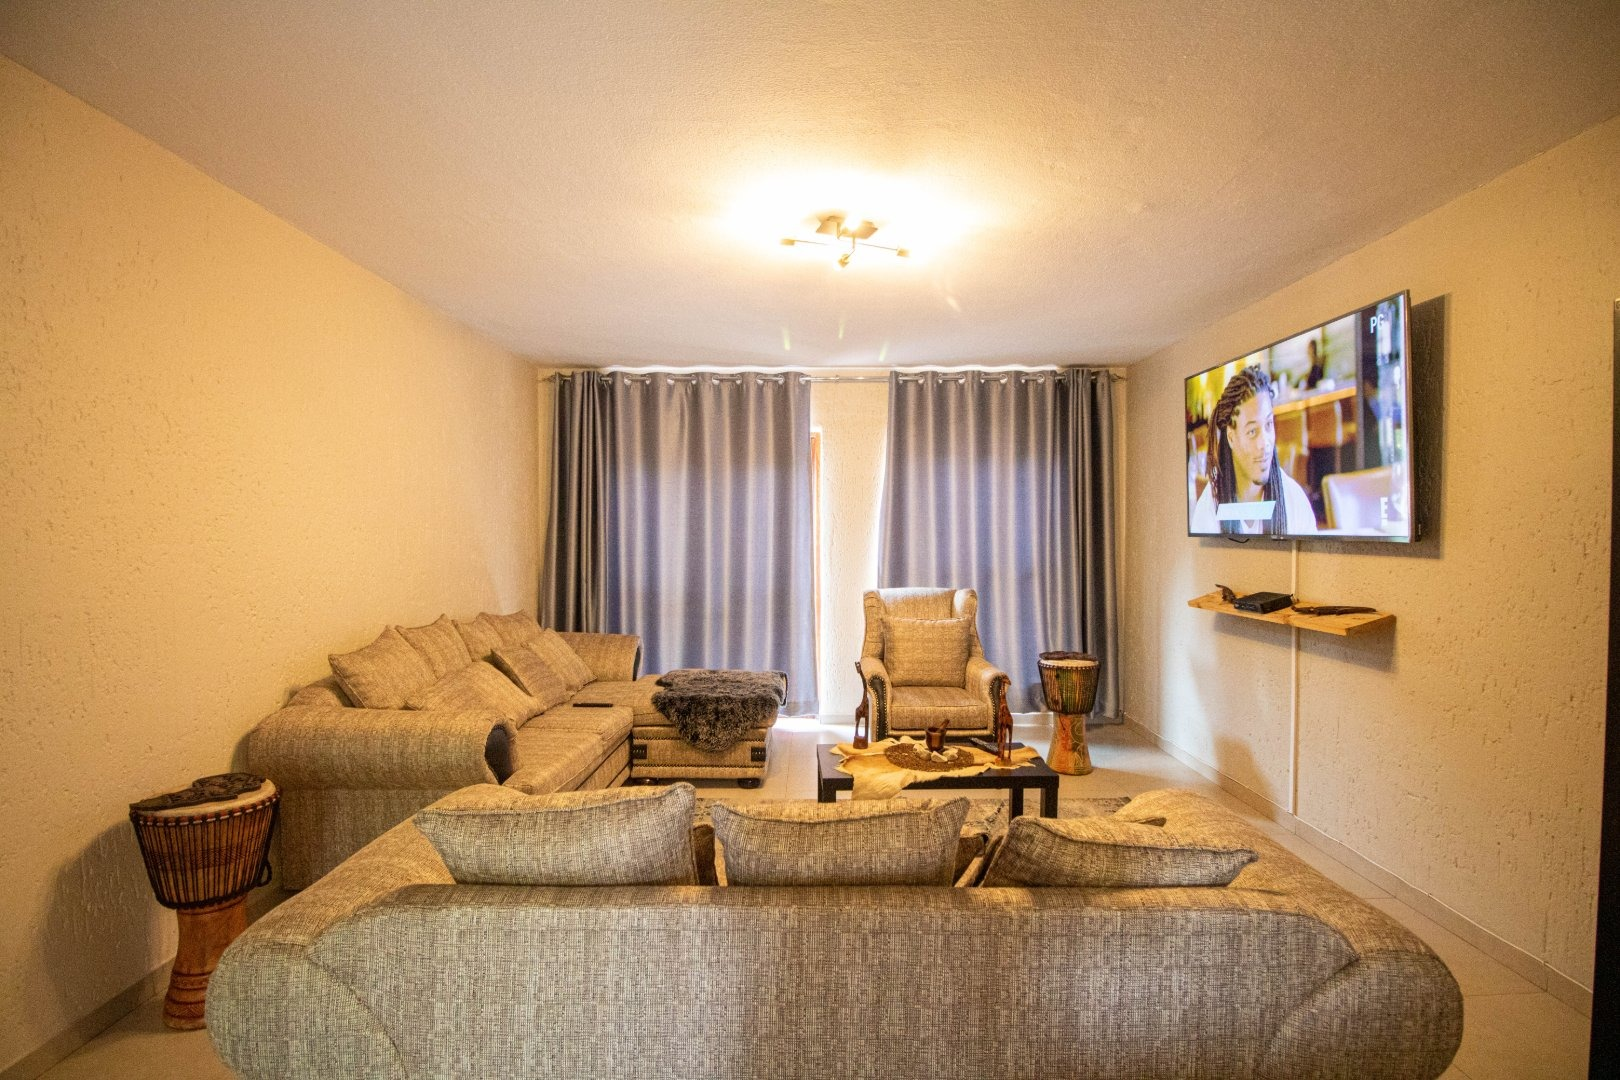 2 Bedroom Apartment / Flat For Sale in New Market Park